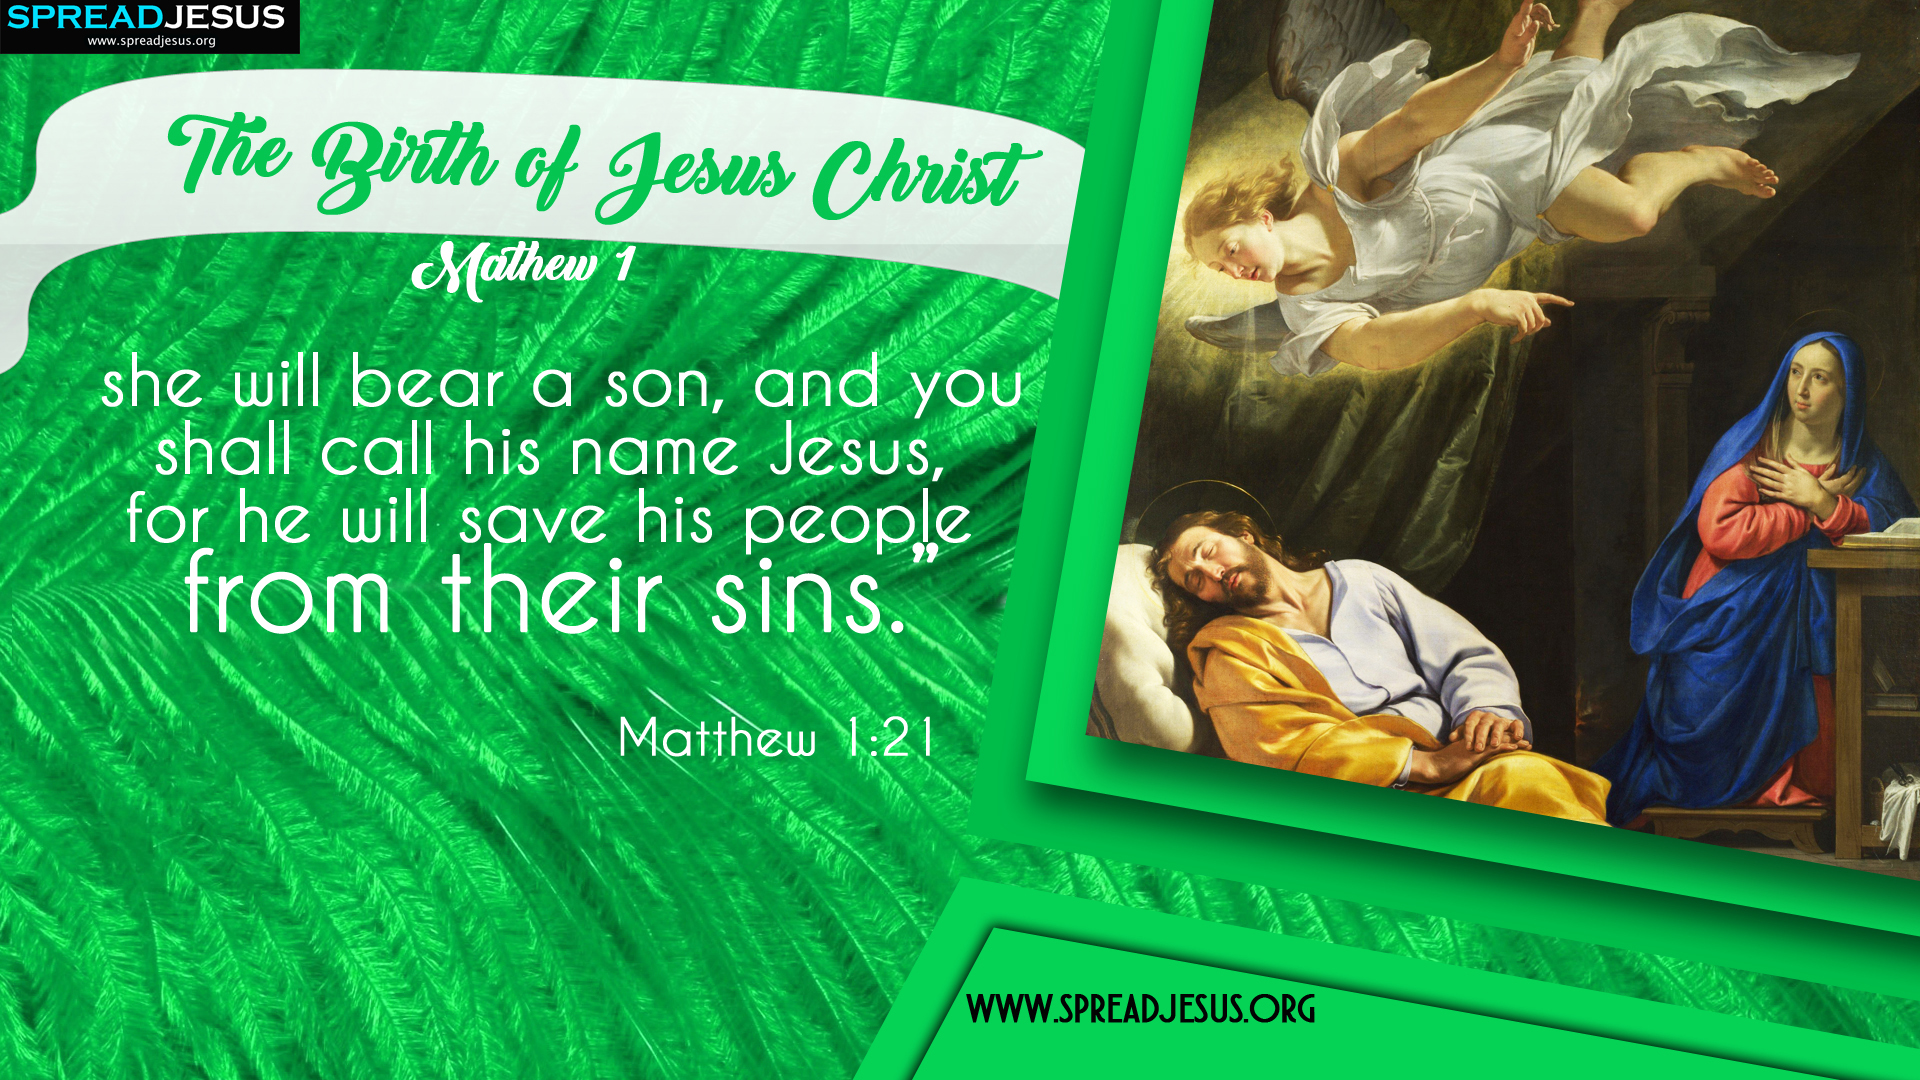 The Birth of Jesus Christ Matthew 1:21 HD-Wallpapers